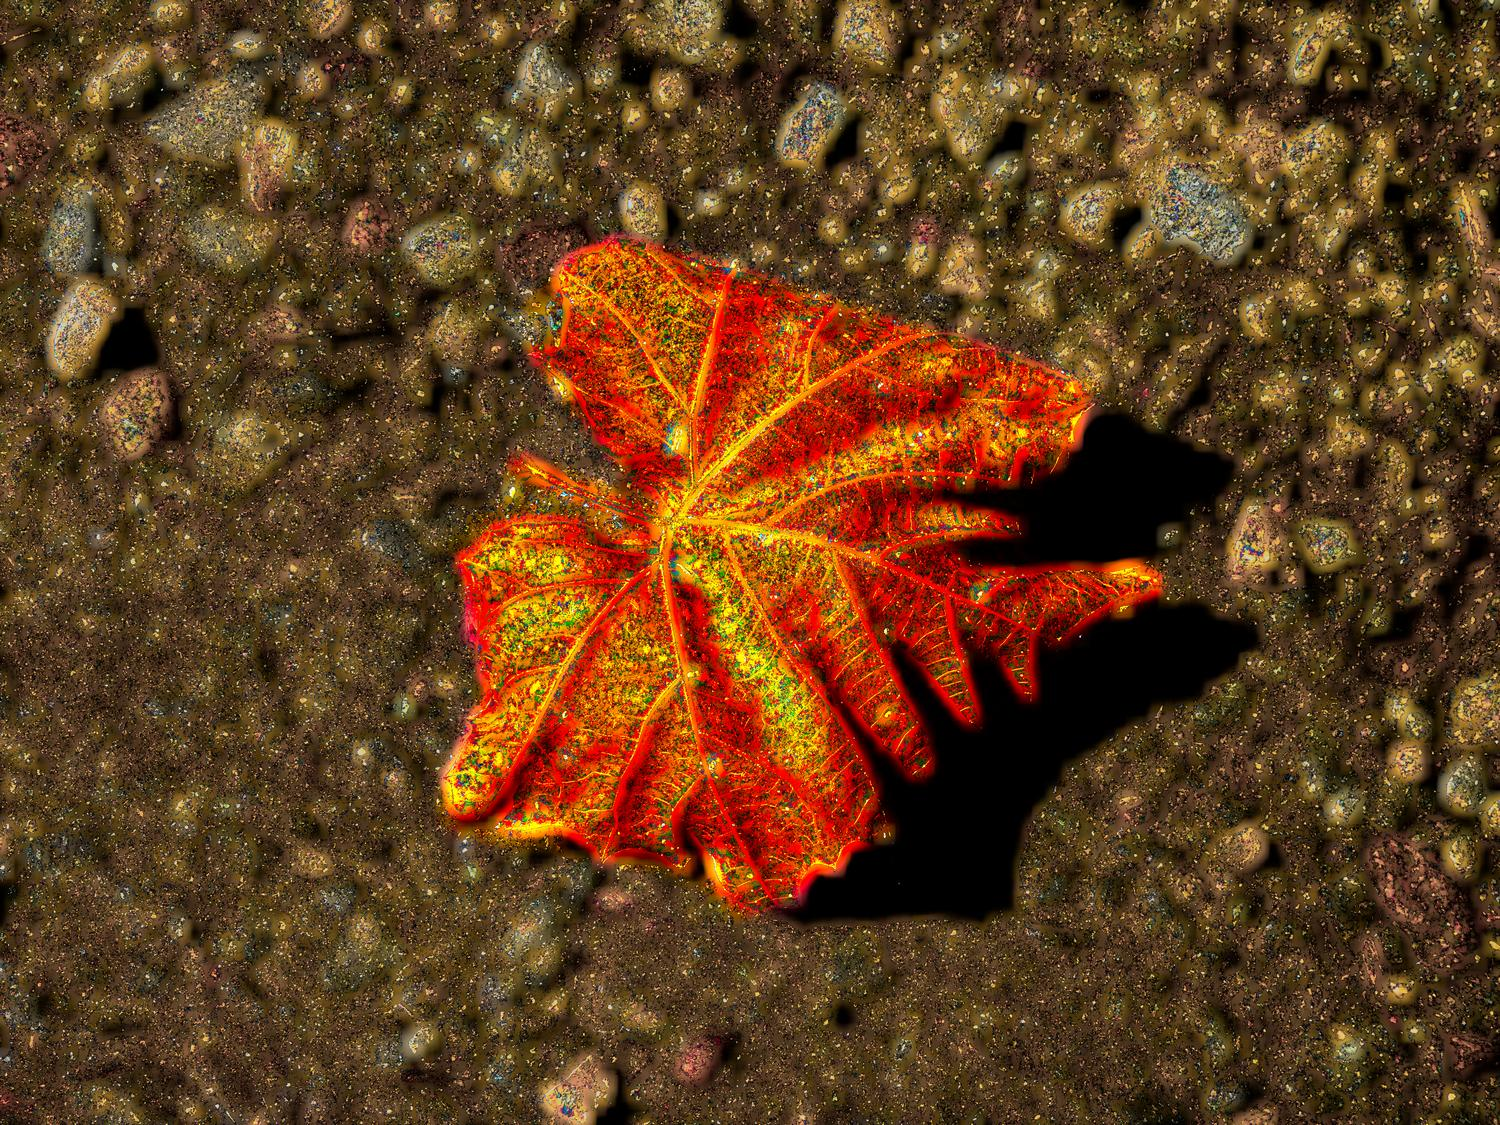 stylized brown leaf on the gravel road - <center>Magical leaf on a dirt road - Techno-Impressionist Museum - Techno-Impressionism - art - beautiful - photo photography picture - by Tony Karp